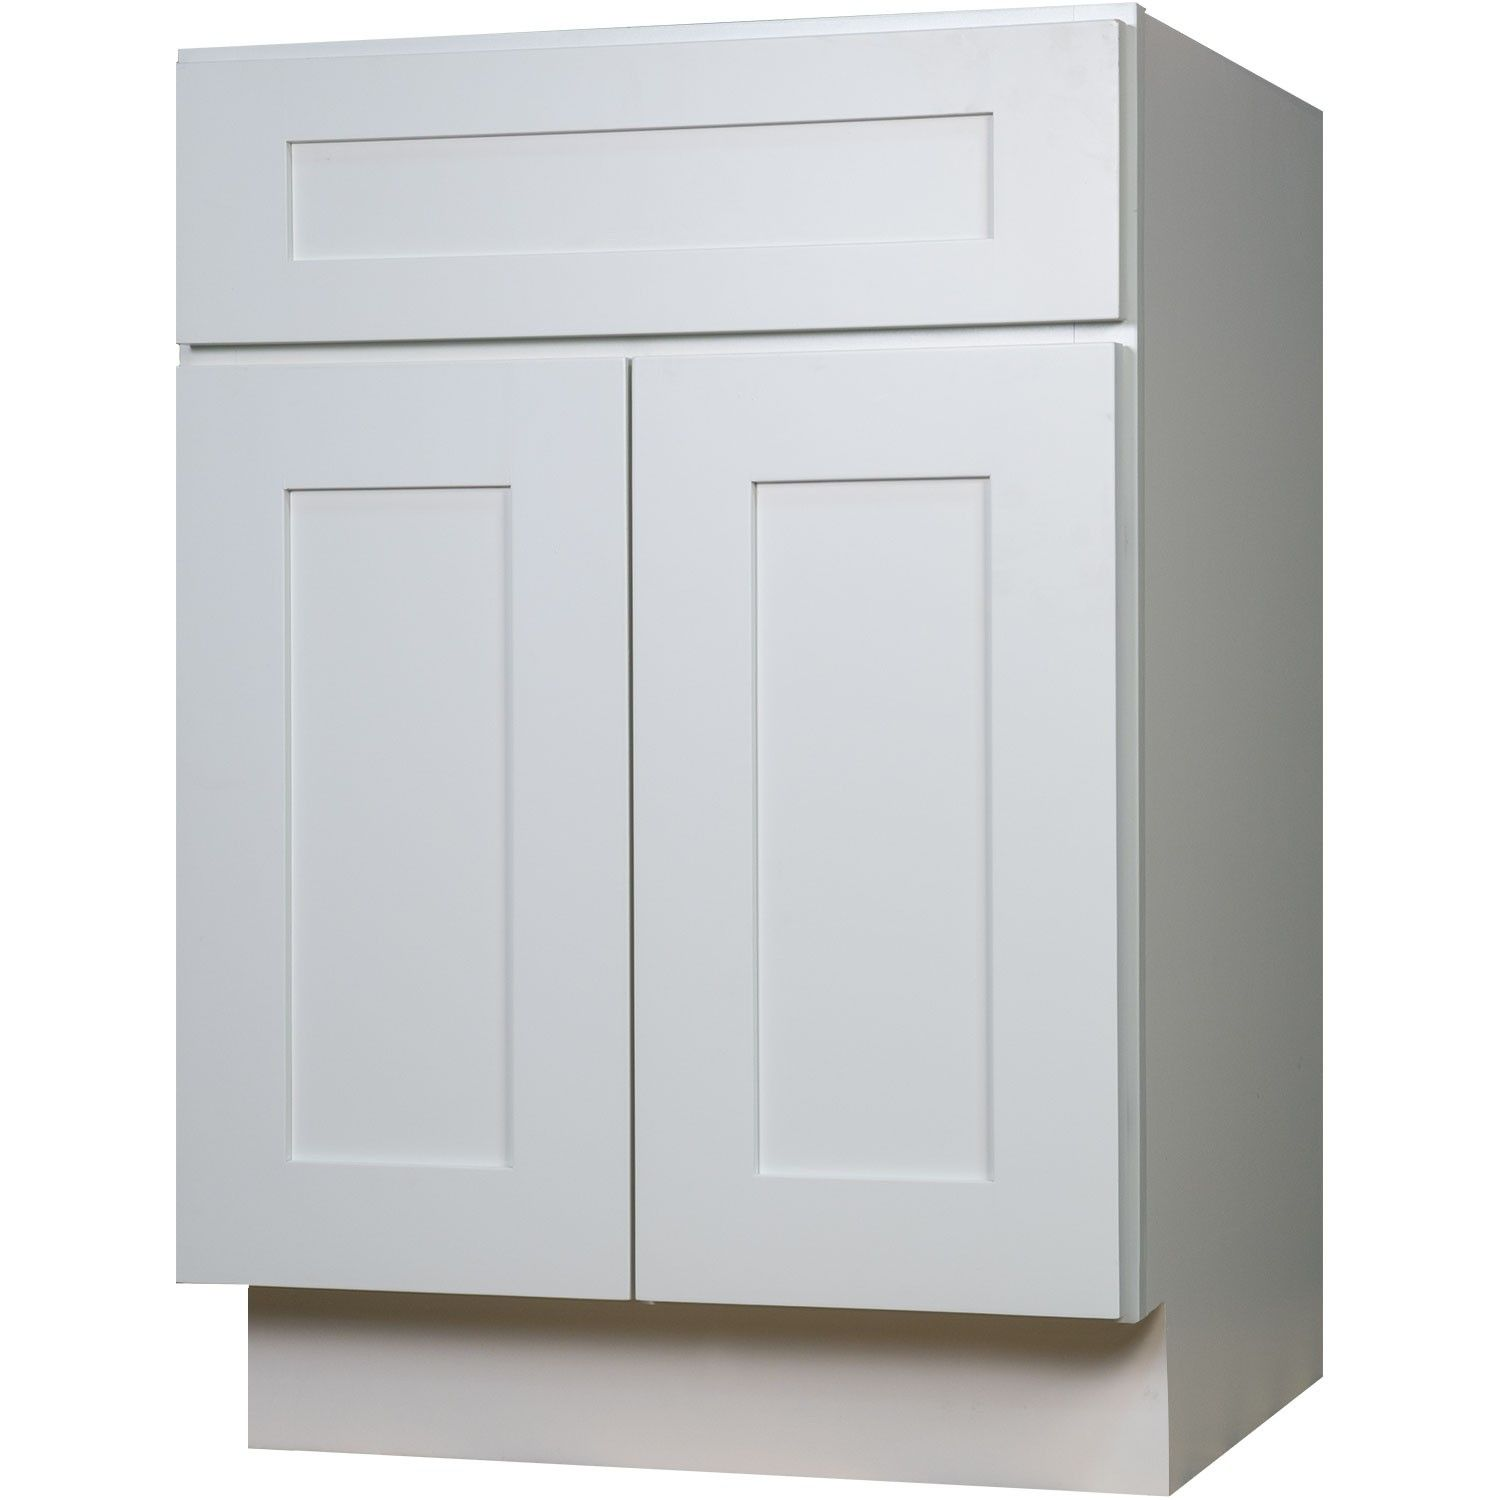 Website Picture Gallery  Inch Bathroom Vanity Single Sink Cabinet in Shaker White with Soft Close Doors